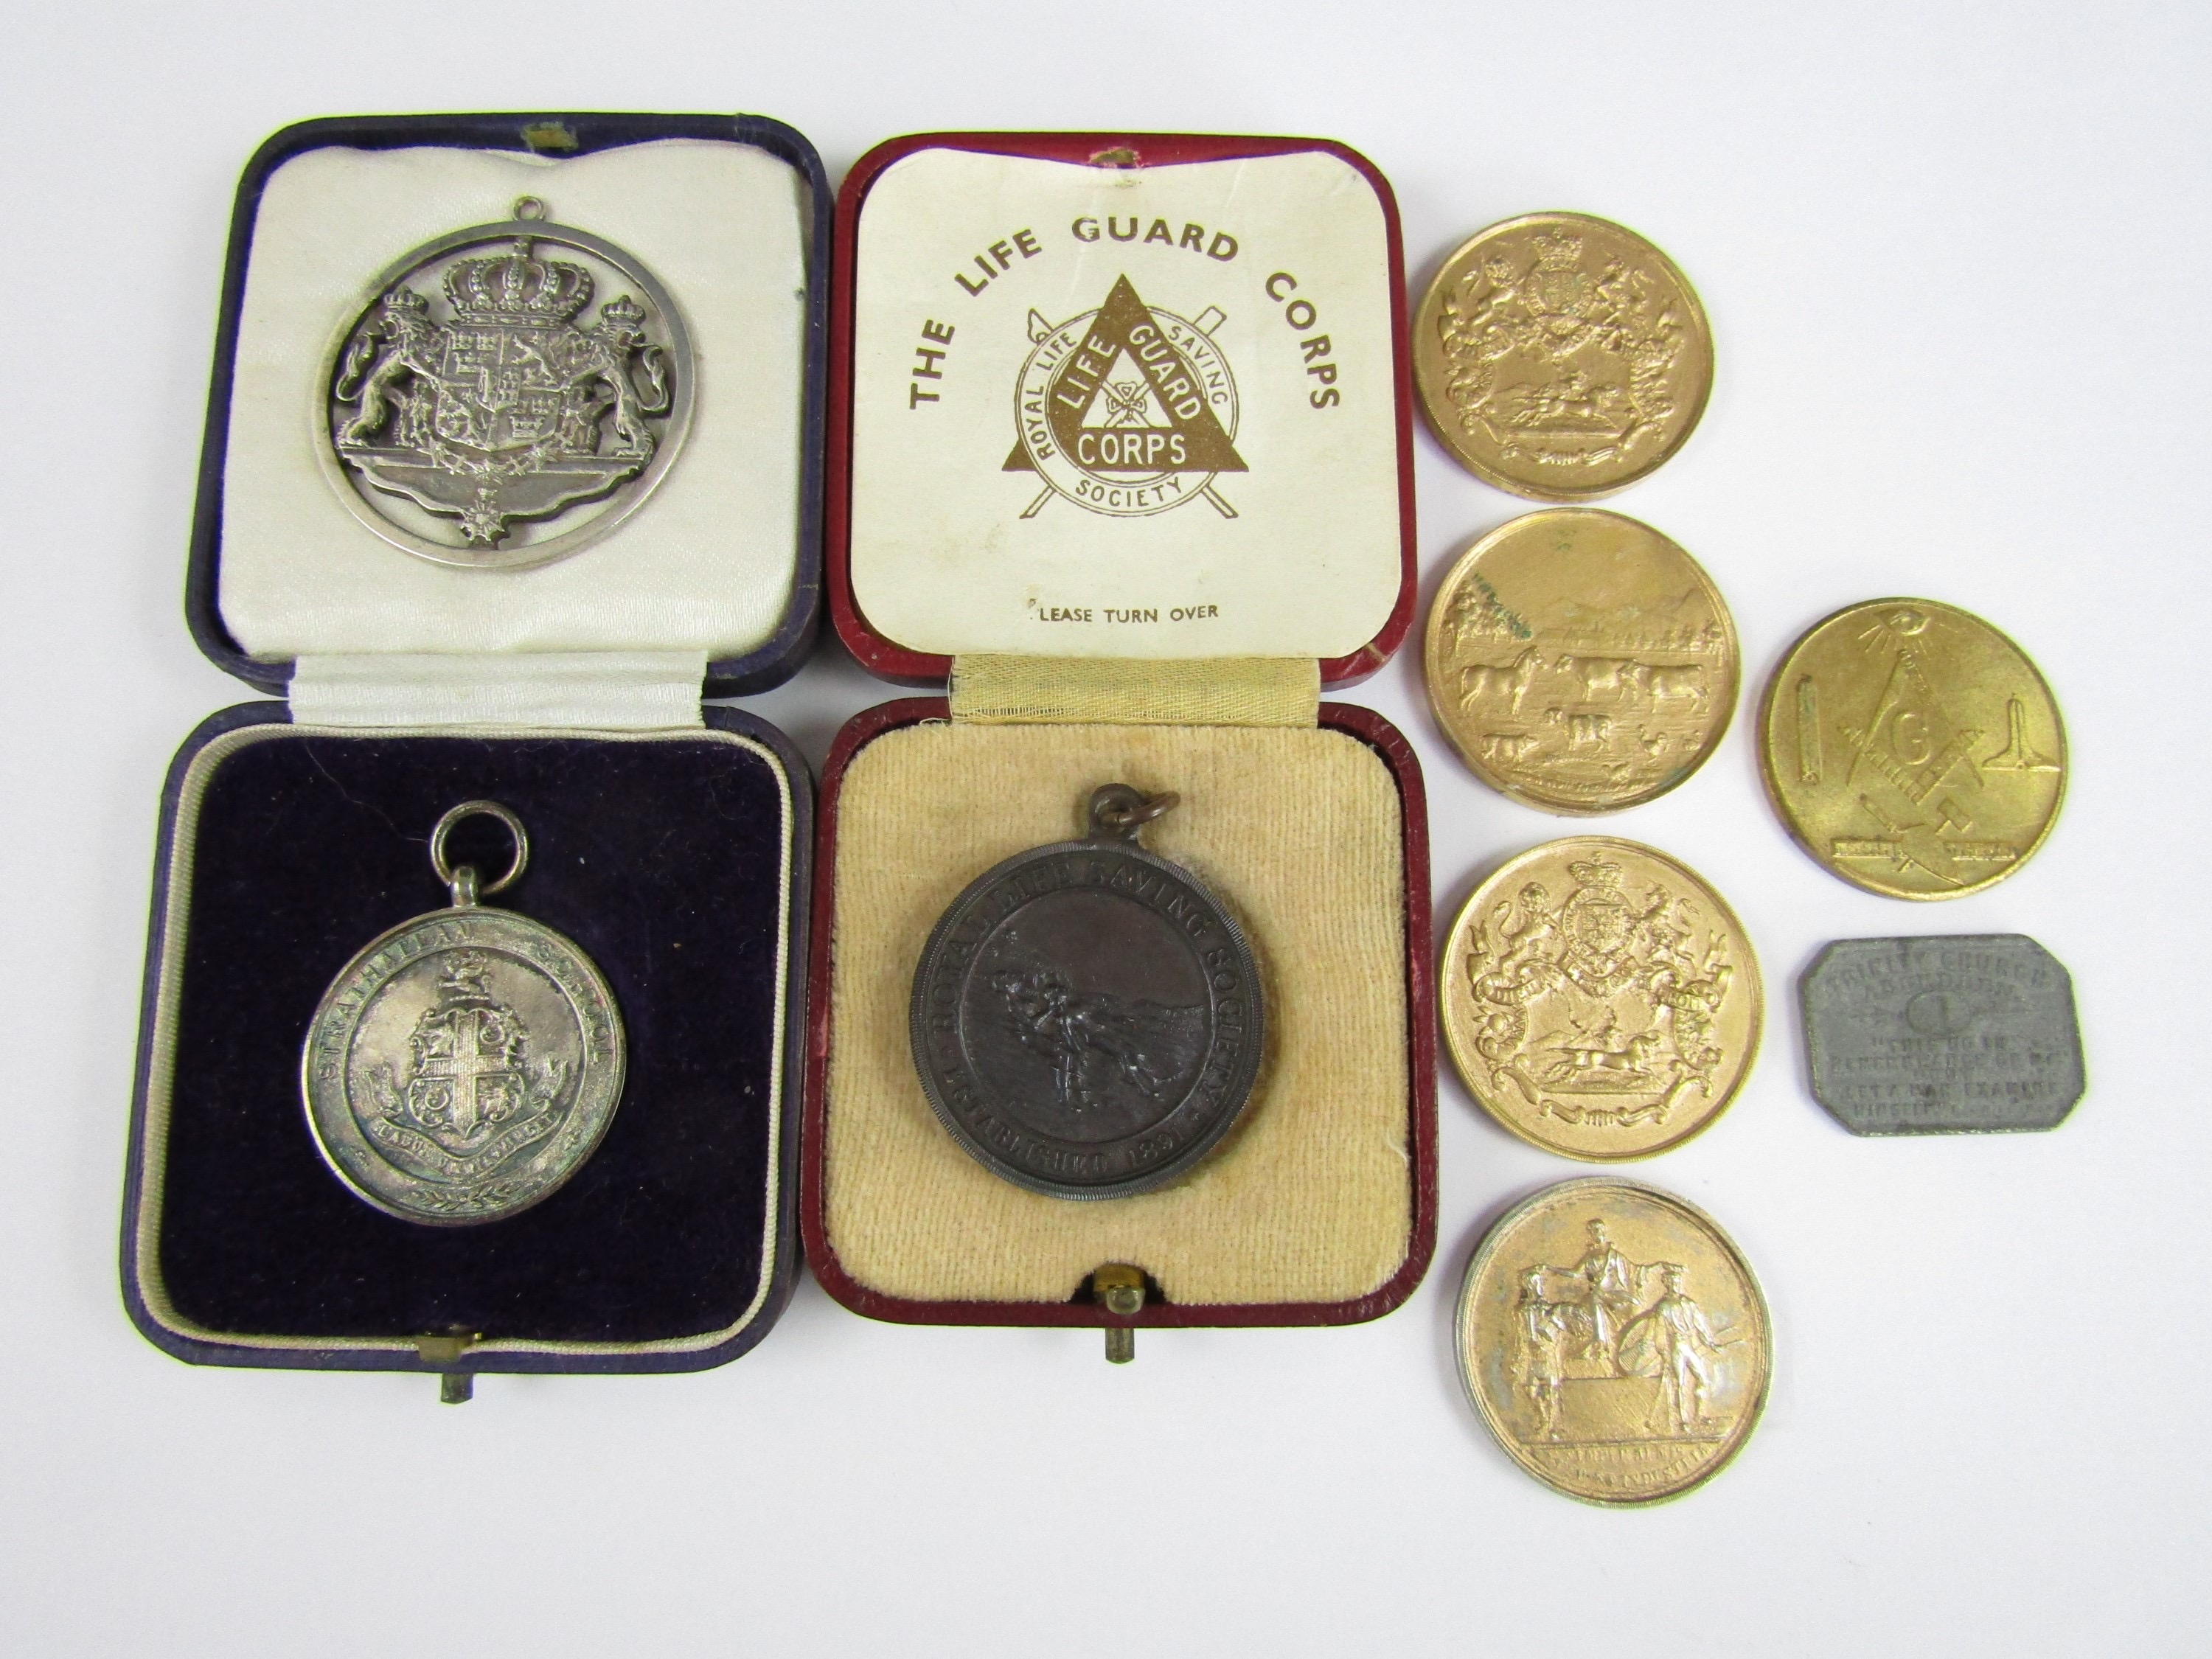 Lot 36 - Vintage prize medallions and tokens, including a Royal Life Saving Society bronze medal awarded to